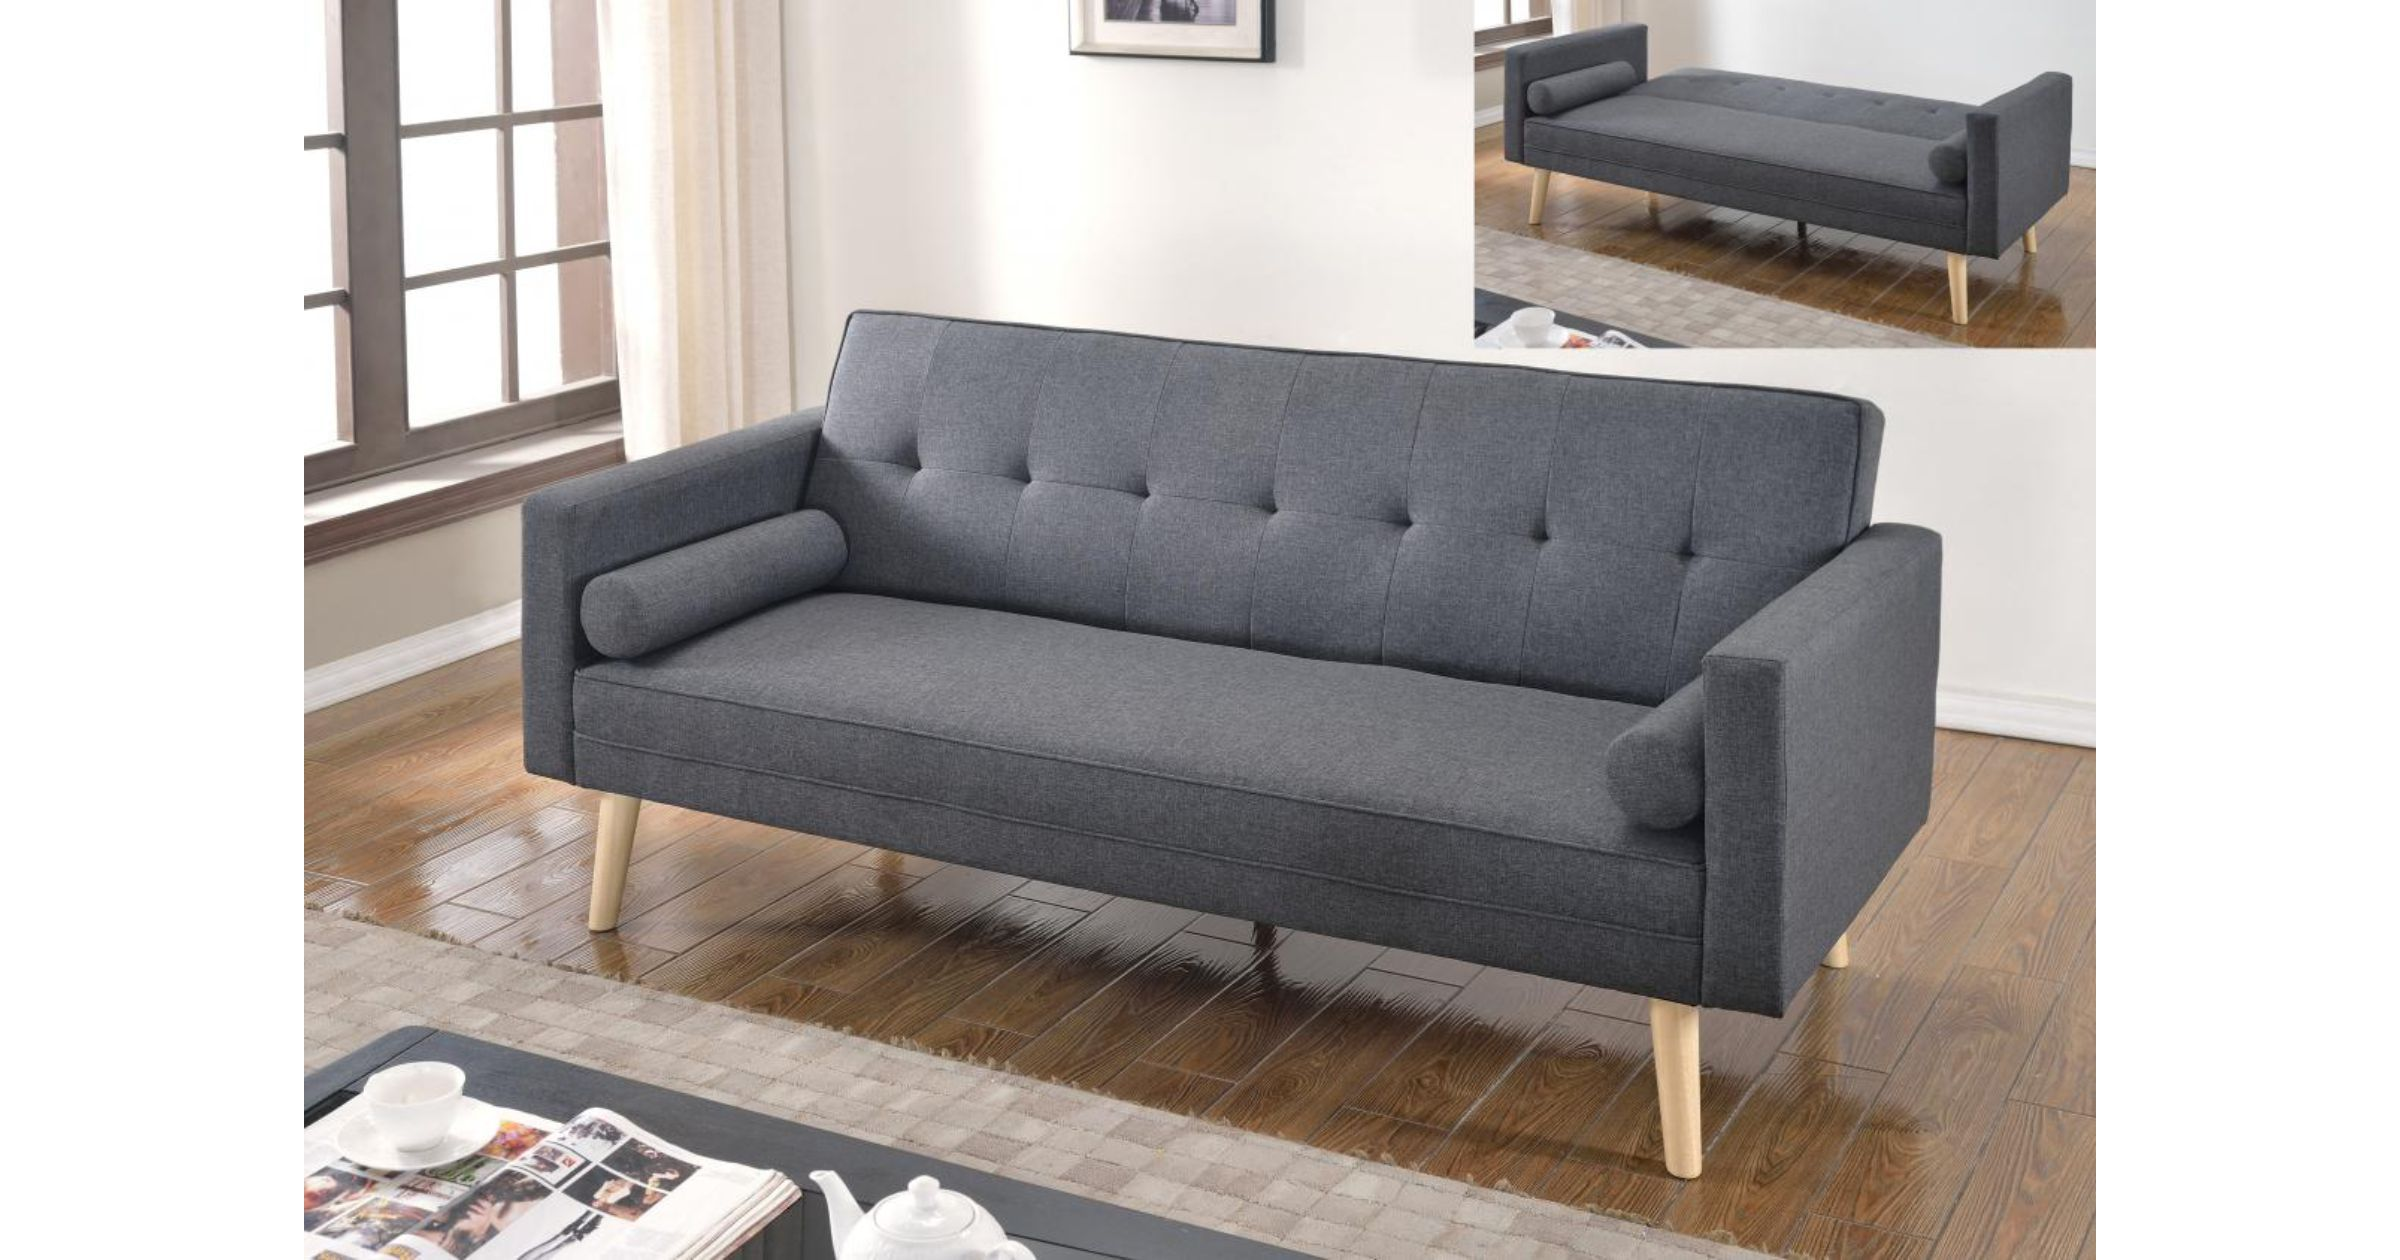 Sofa Bed Abu Dhabi Dark Grey Sofa Bed Powered Store Powered Store